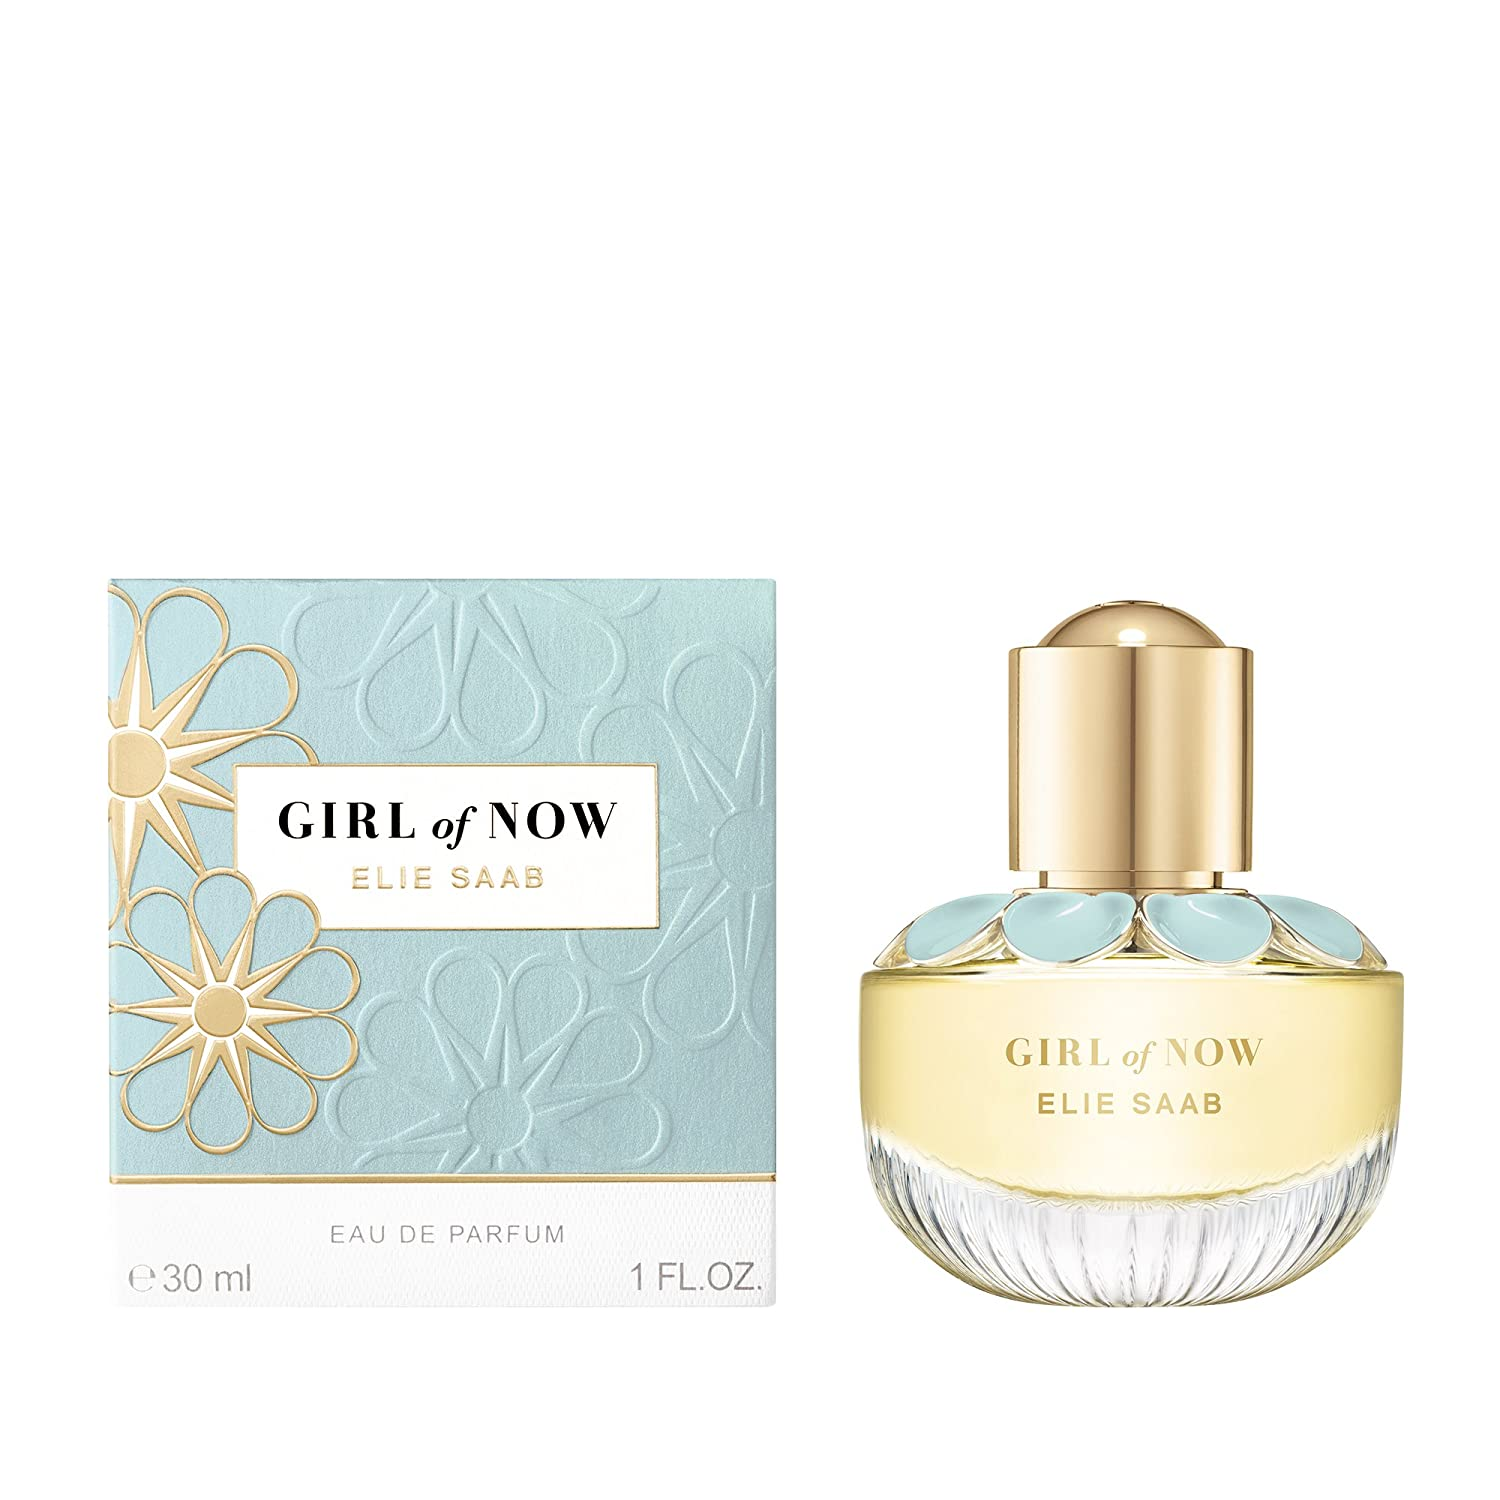 Elie Saab Girl Of Now Edp Spray, 30 ml 3423473996651